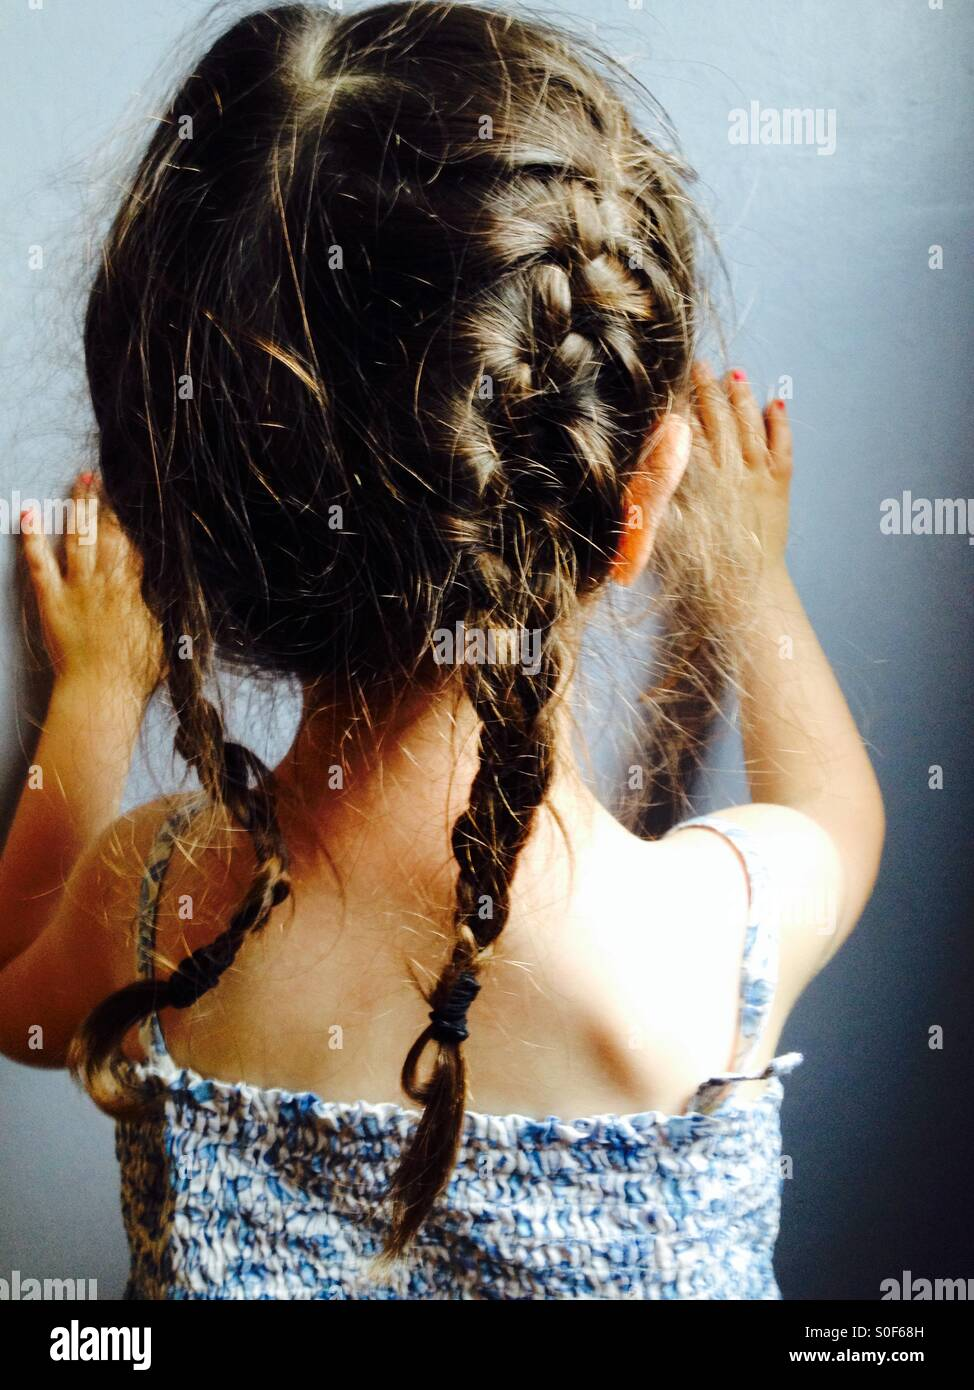 Pigtails on a 3-year old girl - Stock Image